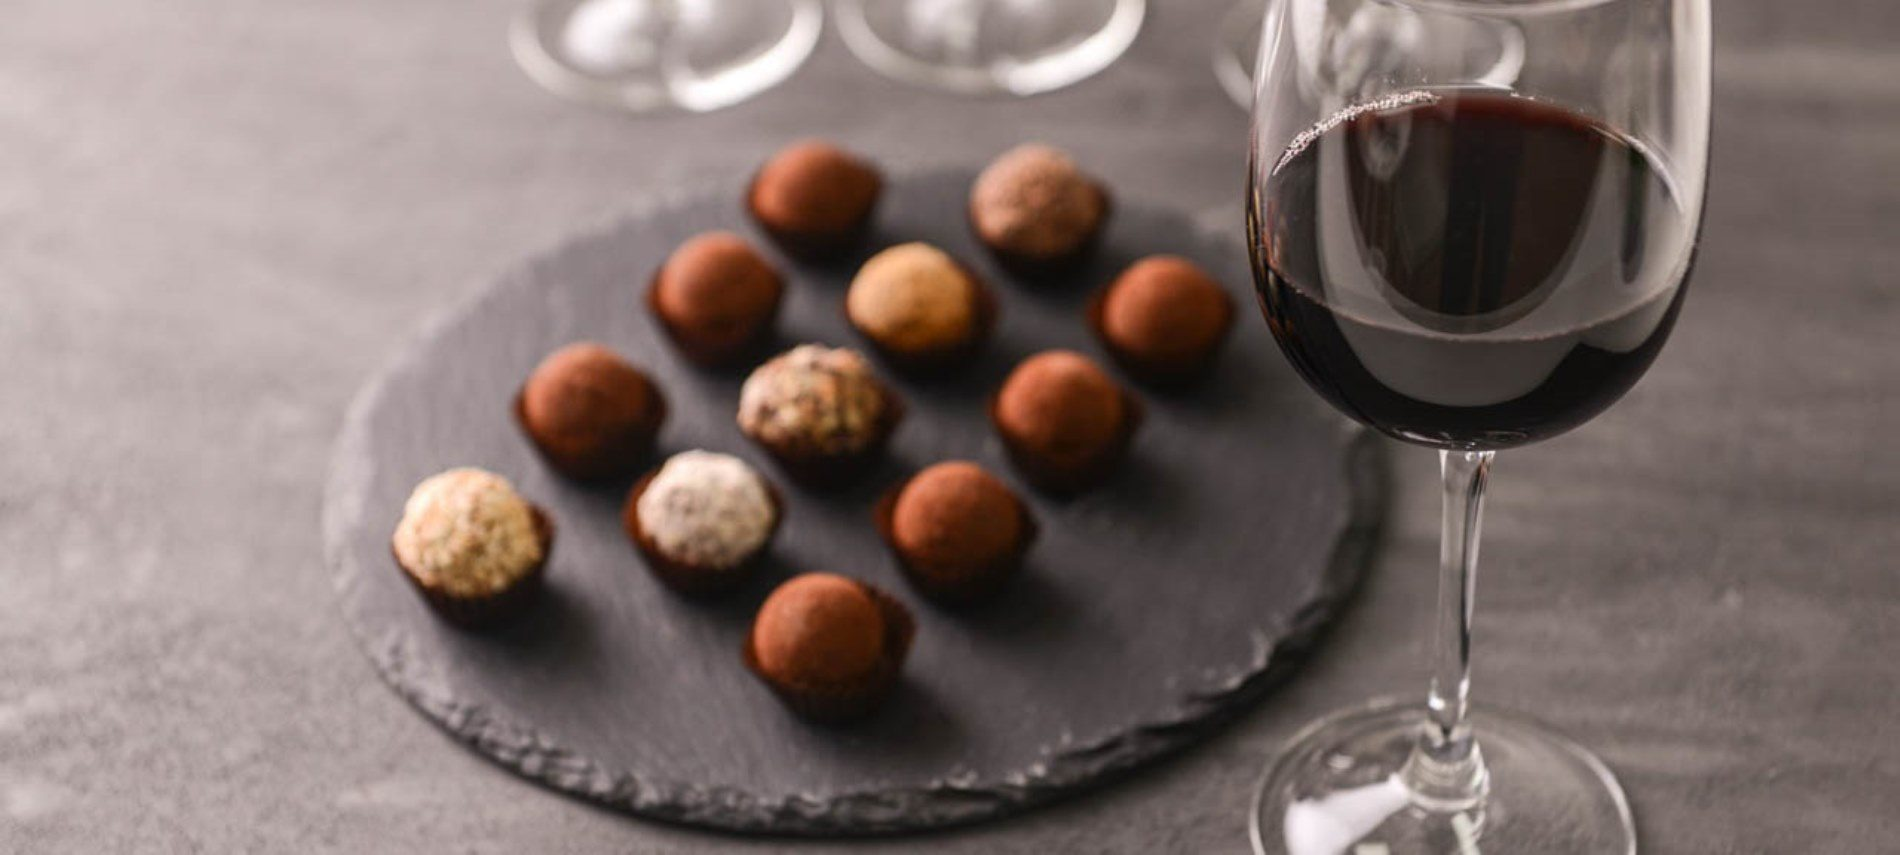 Delicious chocolate truffles and red wine on grey background